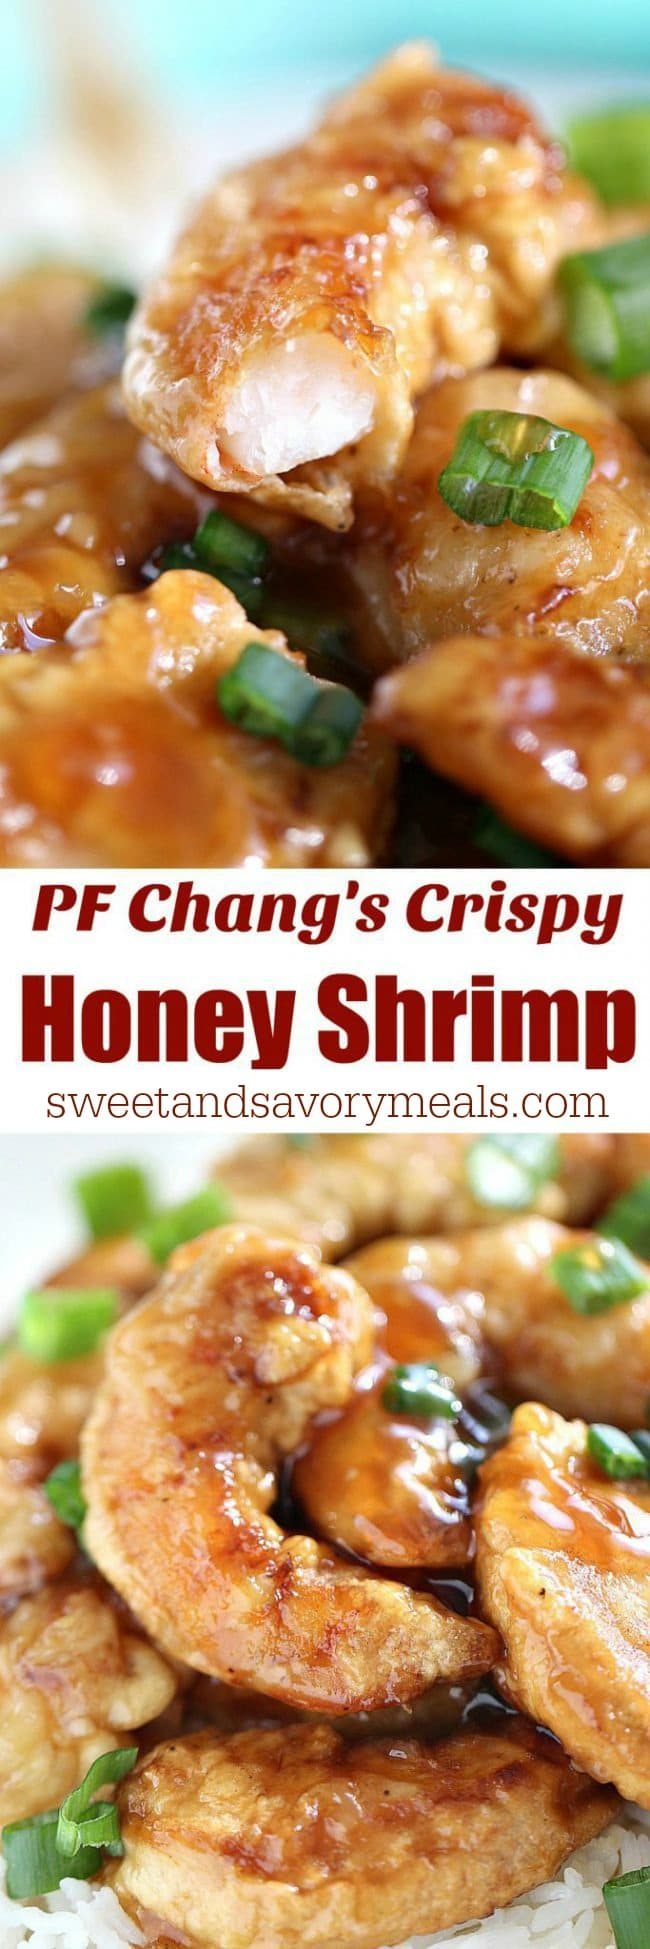 Pf Chang S Crispy Honey Shrimp Copycat Sweet And Savory Meals